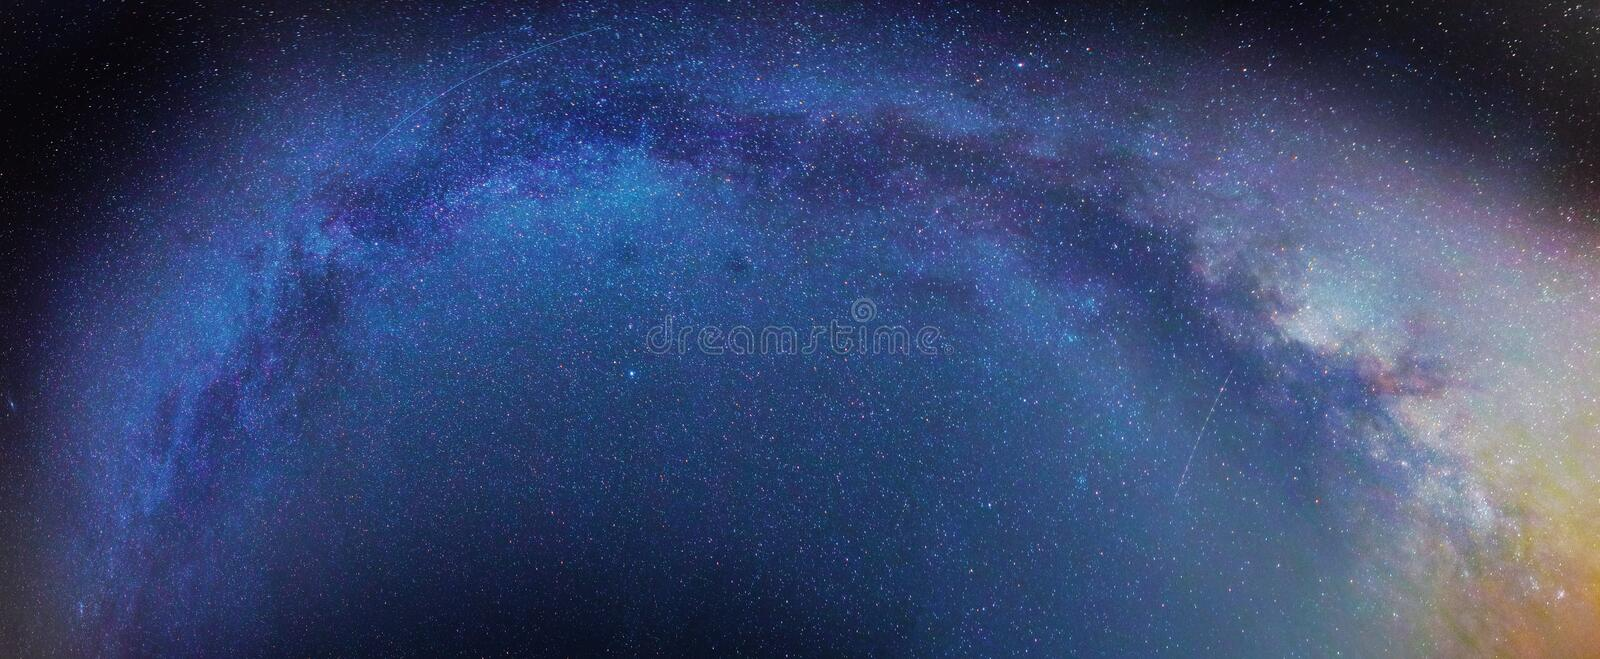 Download Milky Way galaxy stock image. Image of night, space, galaxy - 59248999